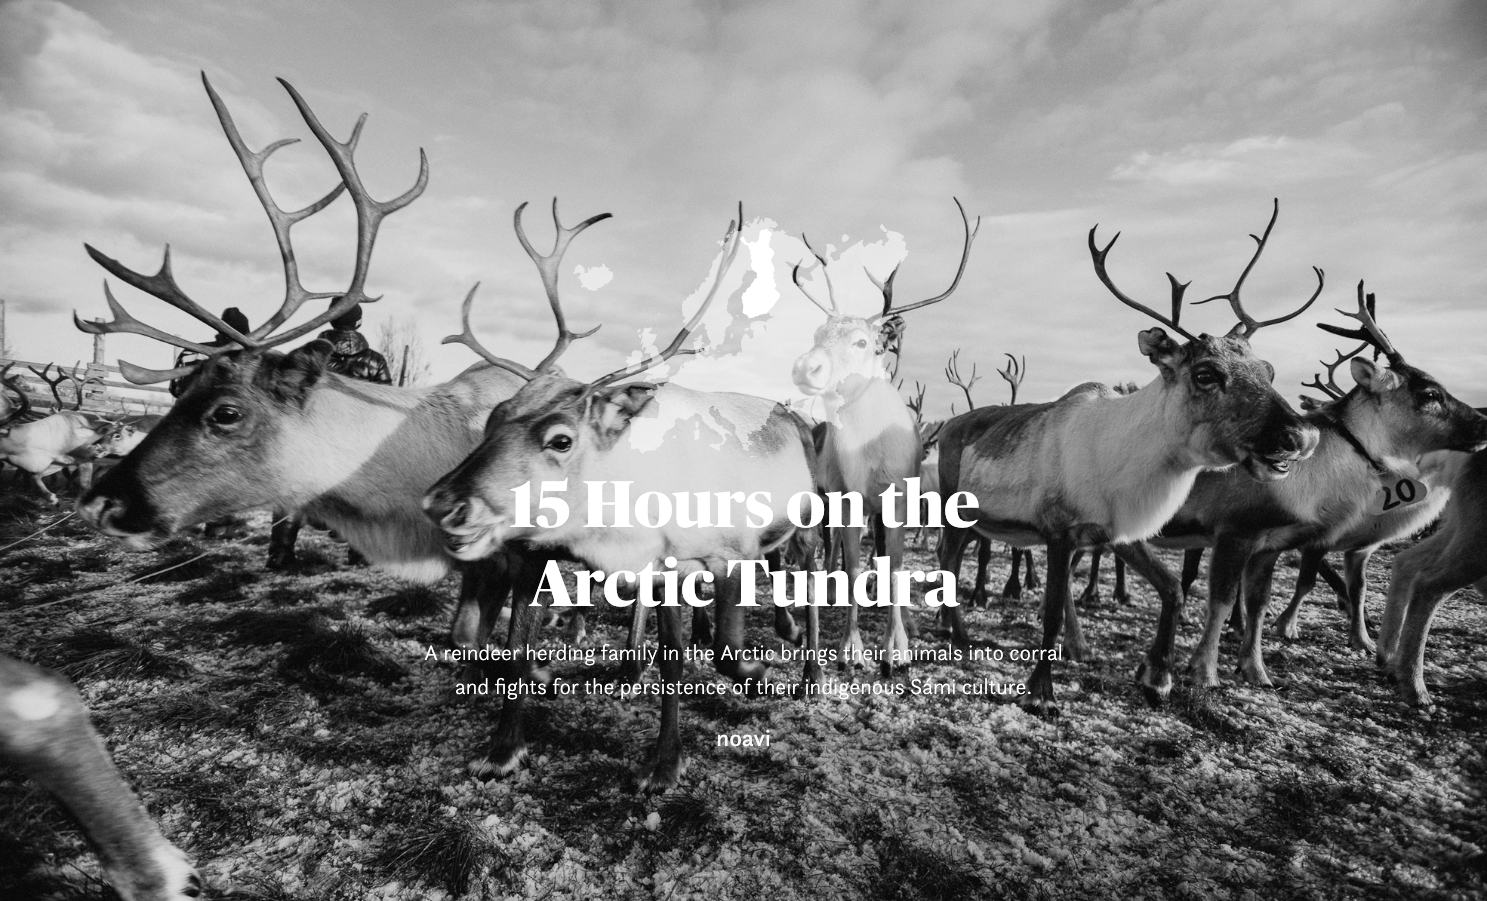 The Arctic, written and photographed by Noavi